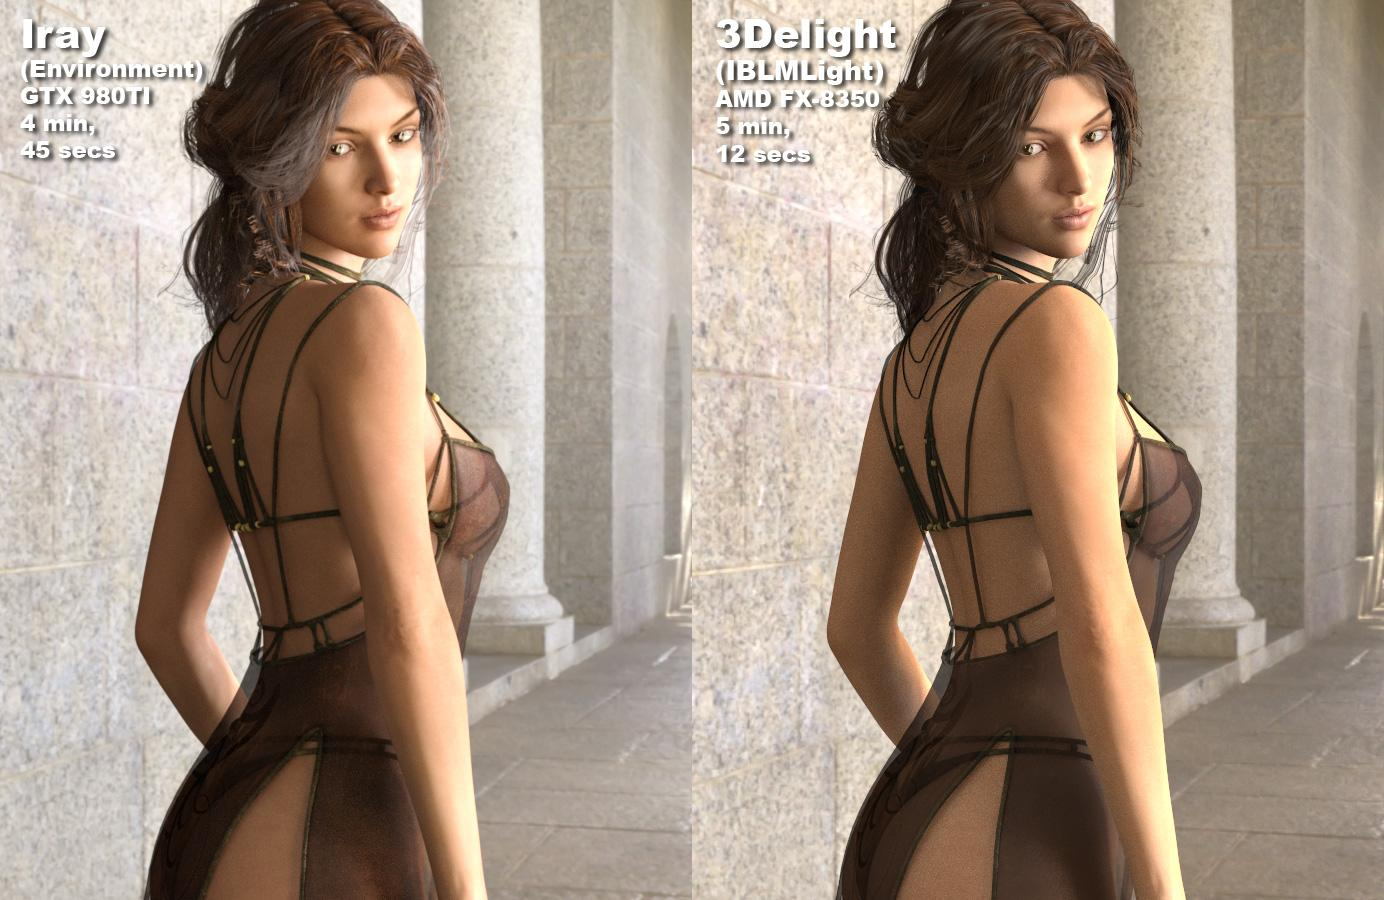 Image Based Light: Iray vs. 3delight with IBLMLight